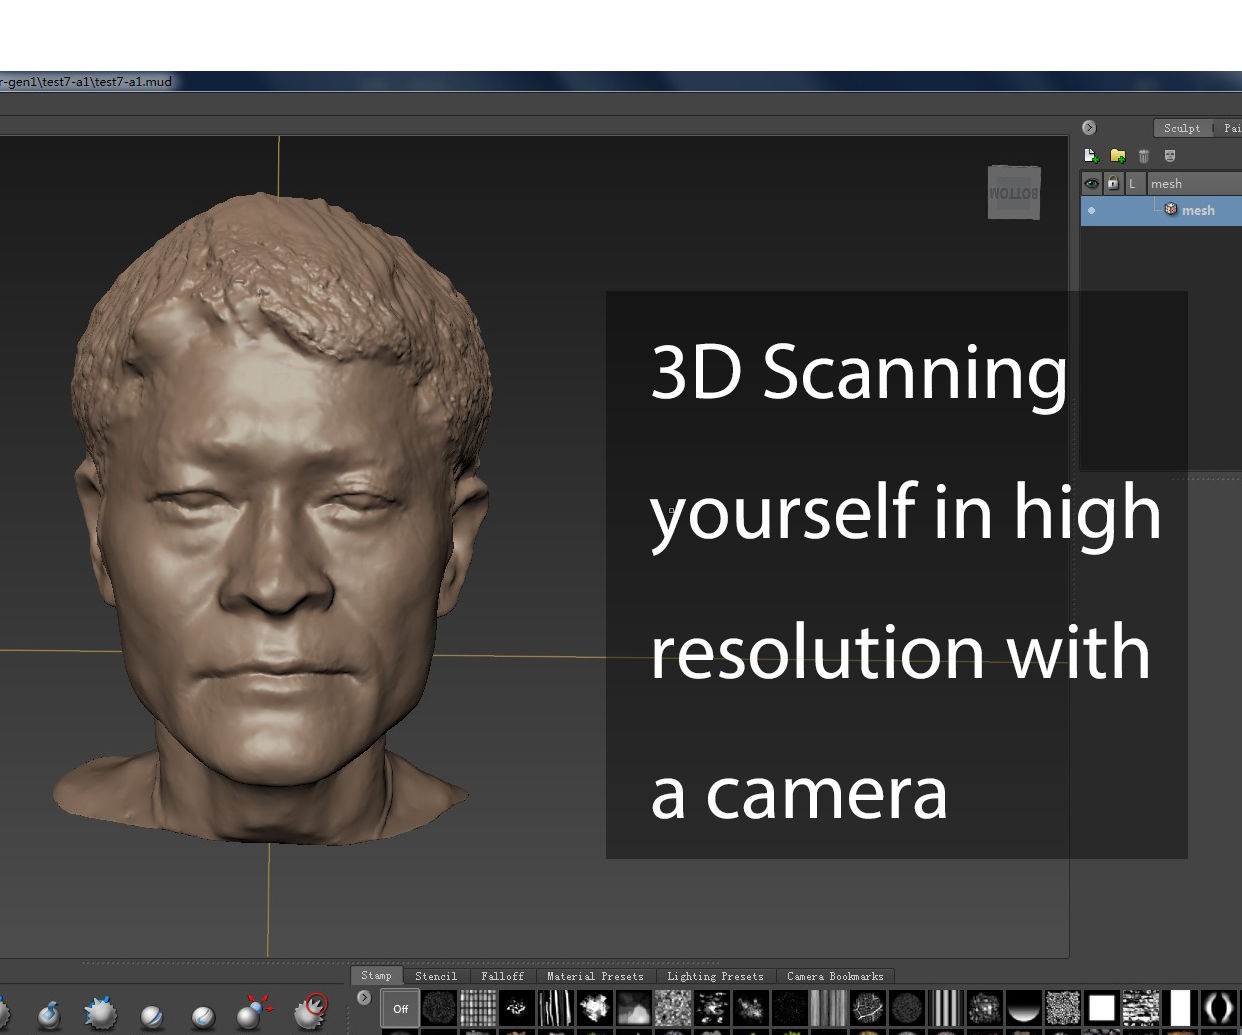 3D Scanning Yourself in High Resolution With a Camera